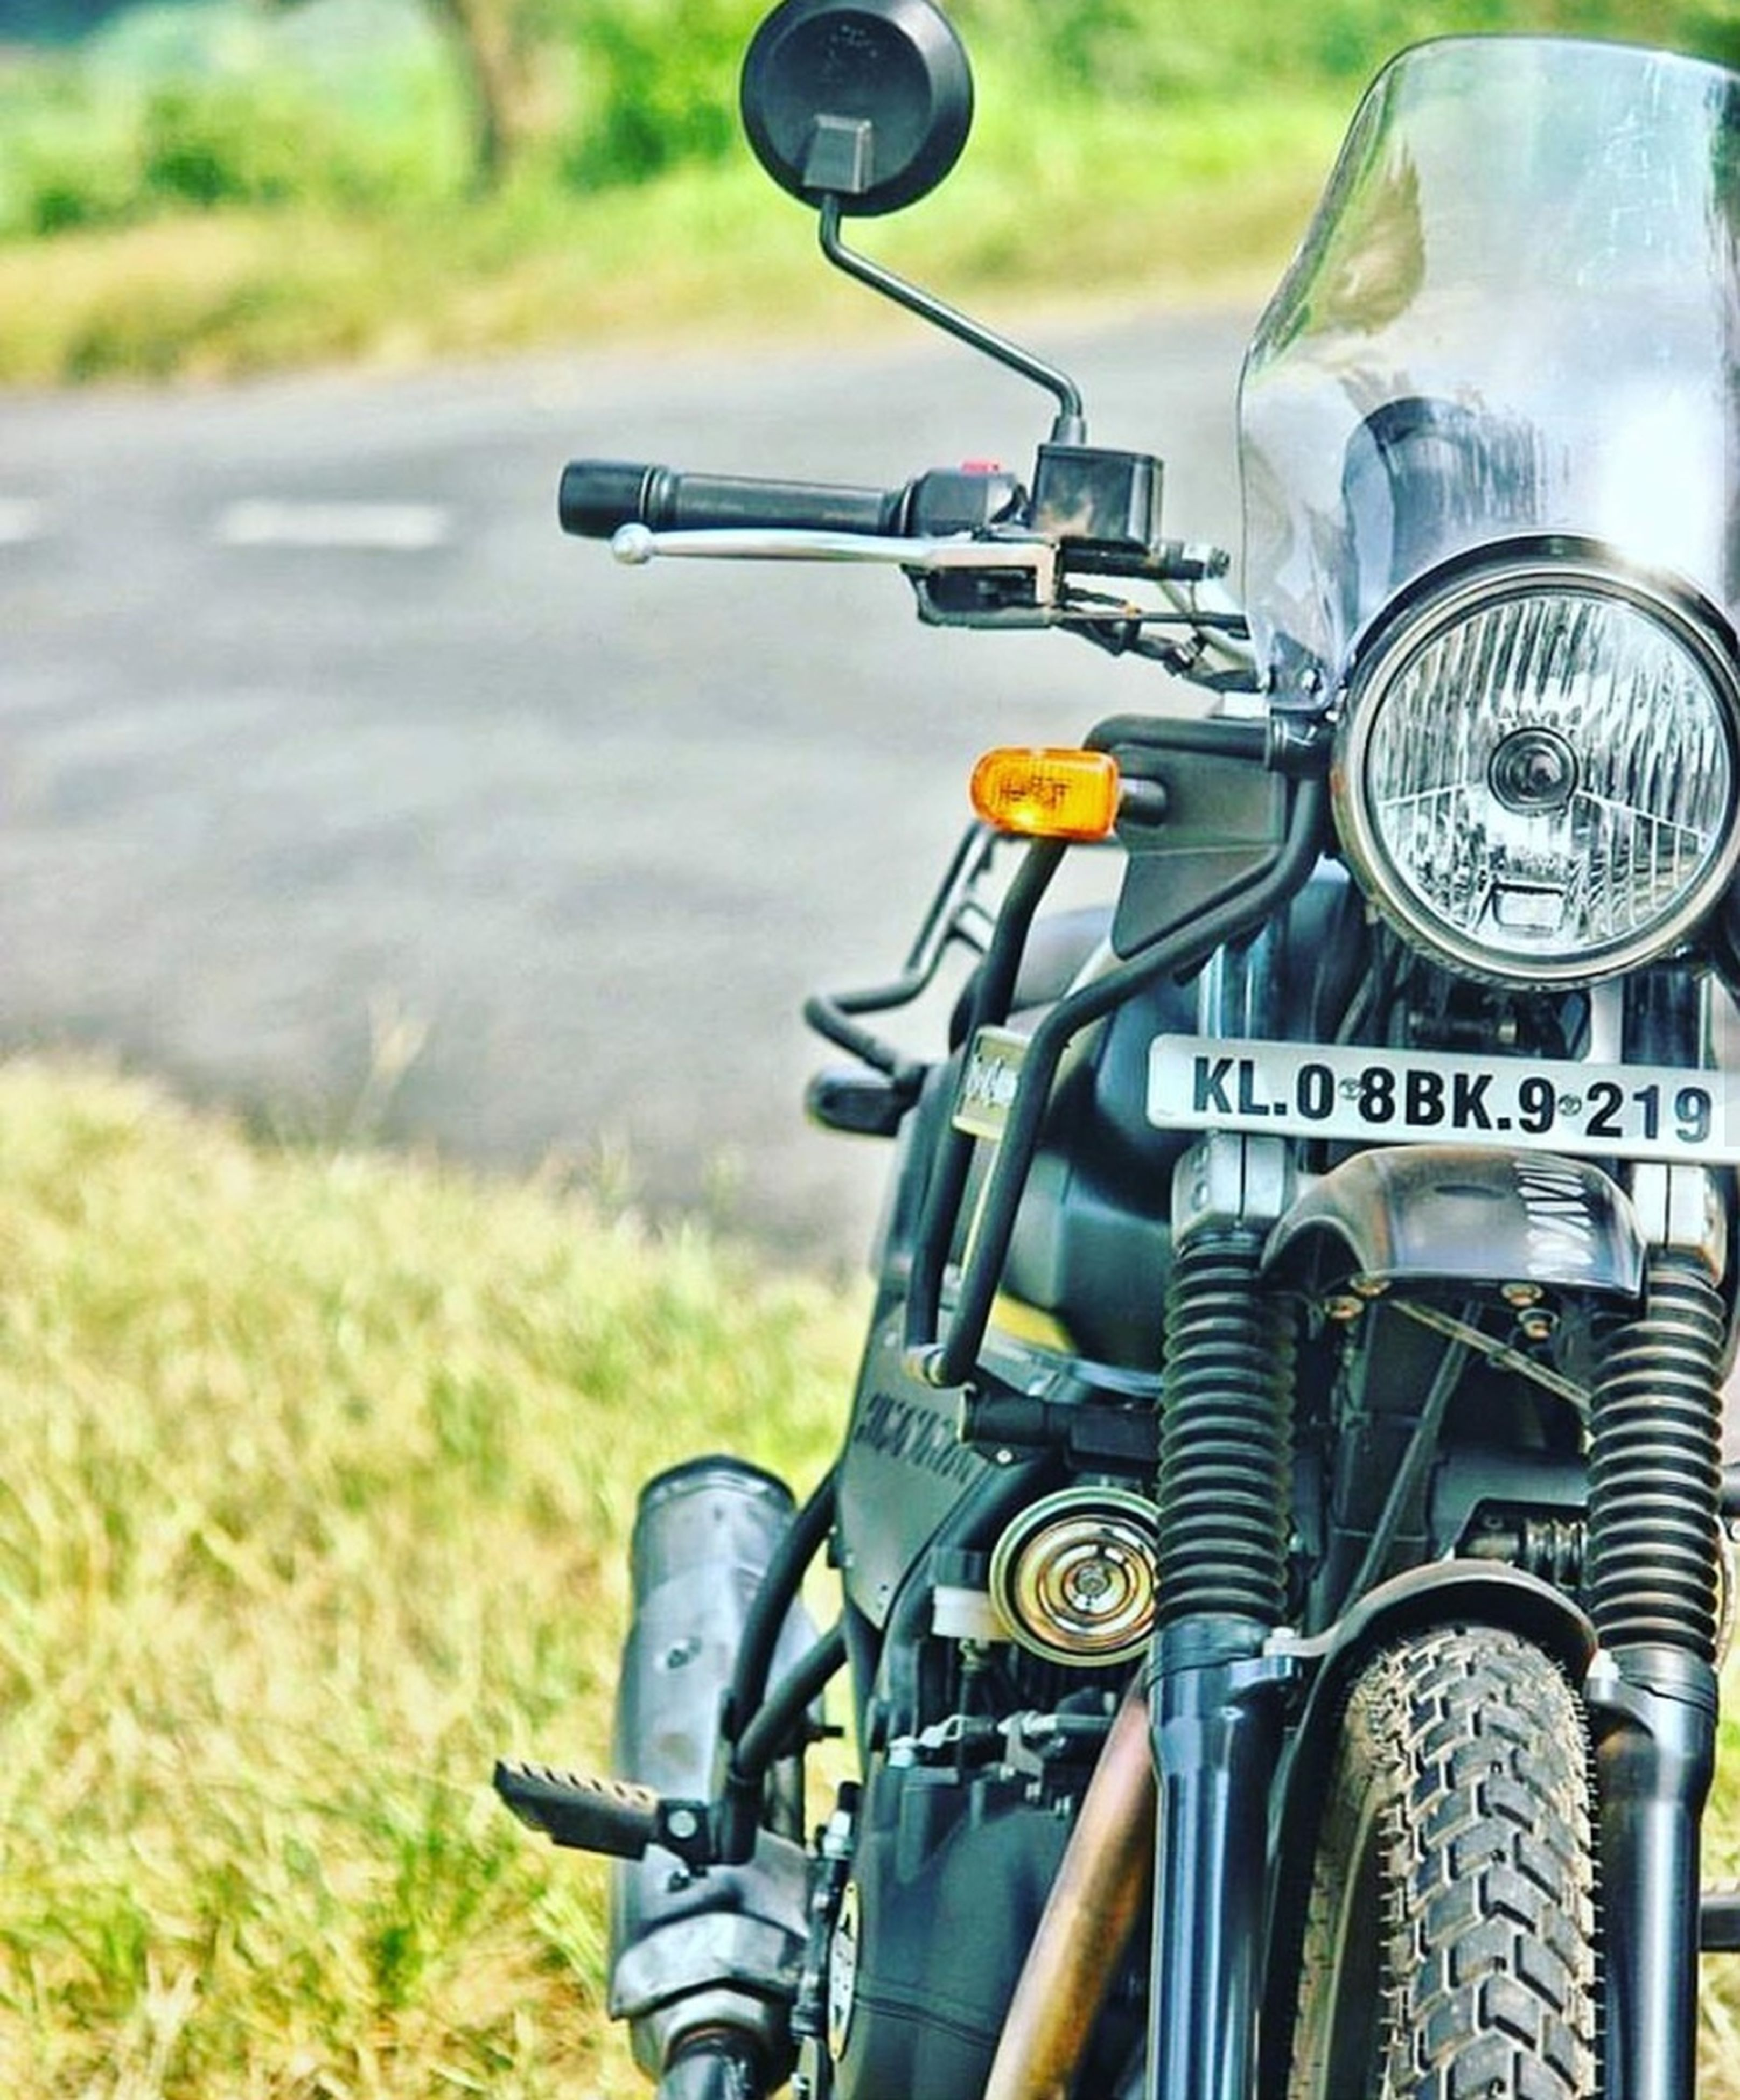 transportation, mode of transport, land vehicle, stationary, bicycle, old-fashioned, outdoors, no people, handlebar, wheel, personal land vehicle, road, day, bicycle basket, close-up, vehicle mirror